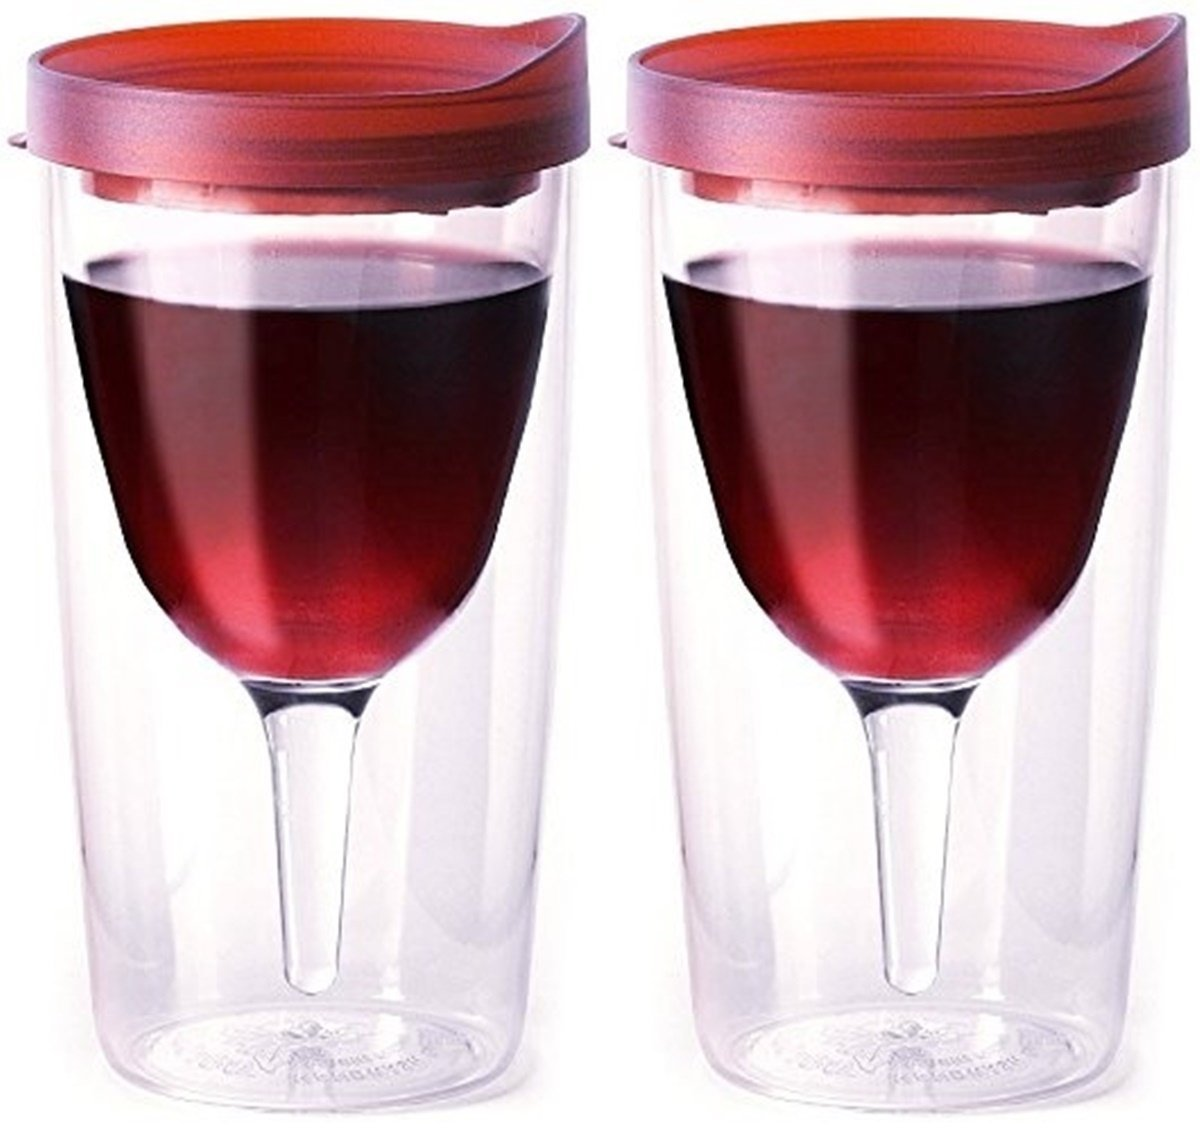 Amazon Com Vino2go Double Wall Acrylic Tumbler With Double Red Merlot Lids 10 Oz Pack Of 2 Tumblers Water Glasses